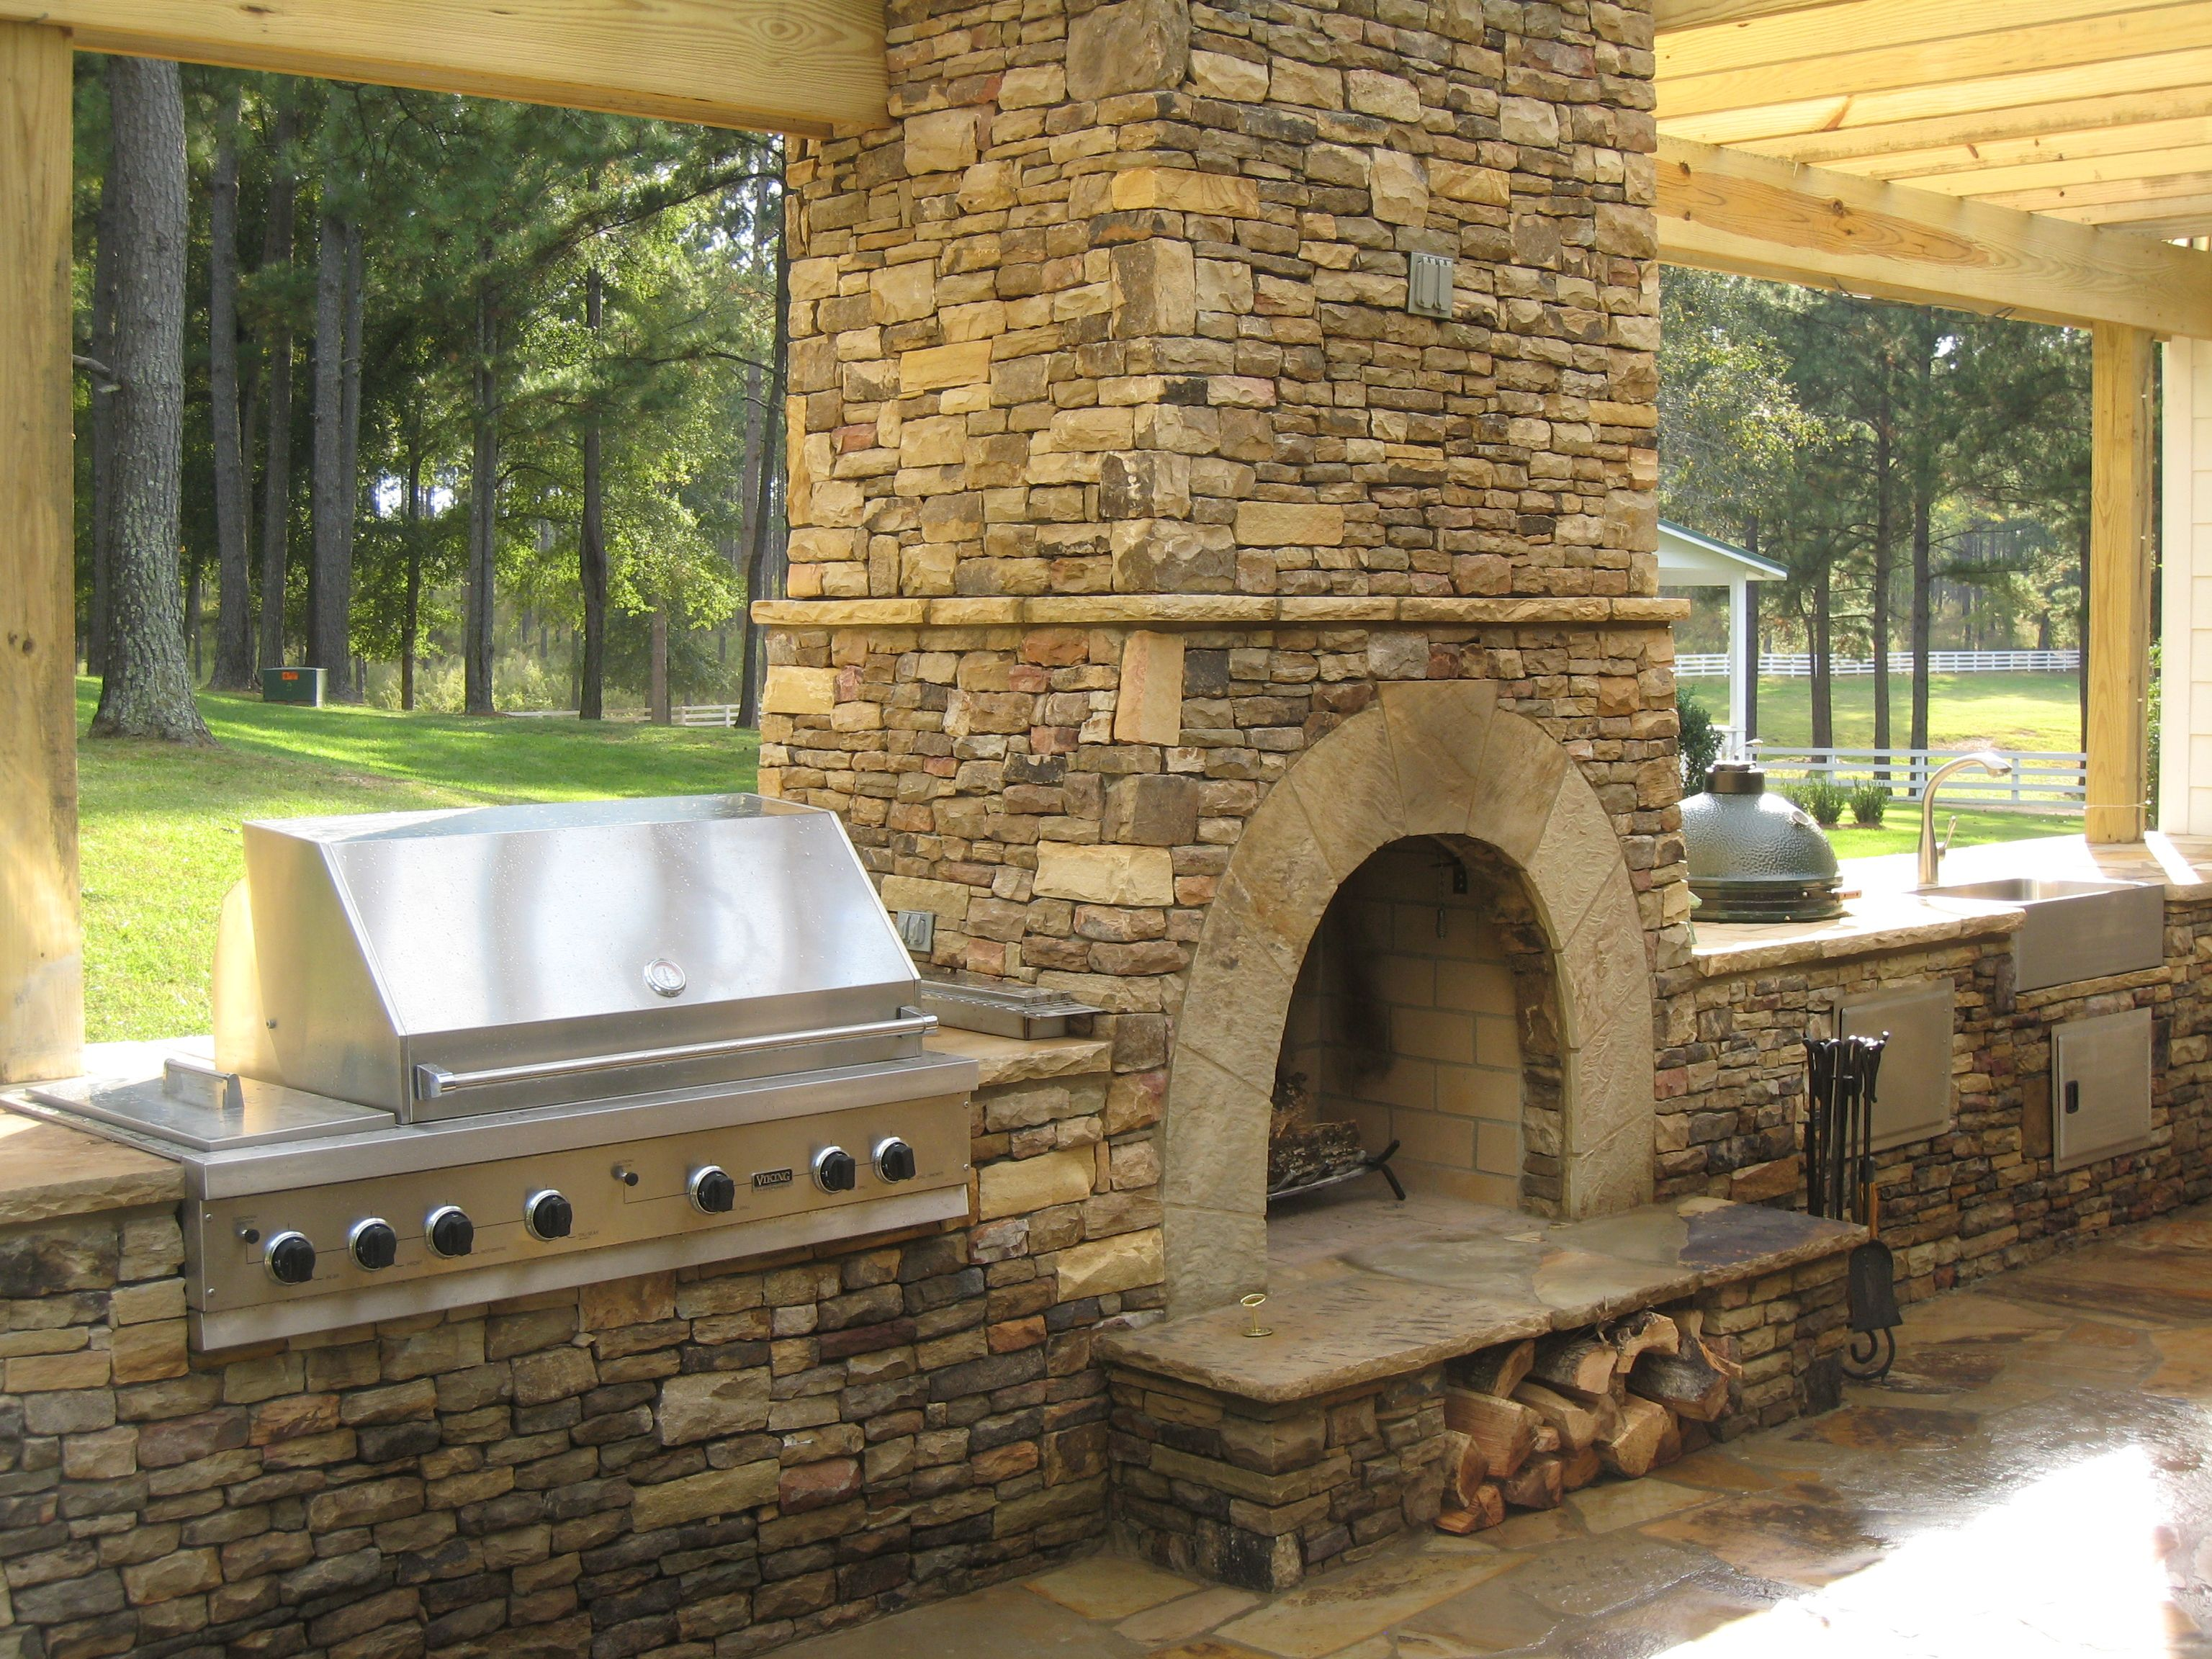 amazing outdoor fireplace designs part 1 patio grill outdoor kitchens fireplaces eva furniture